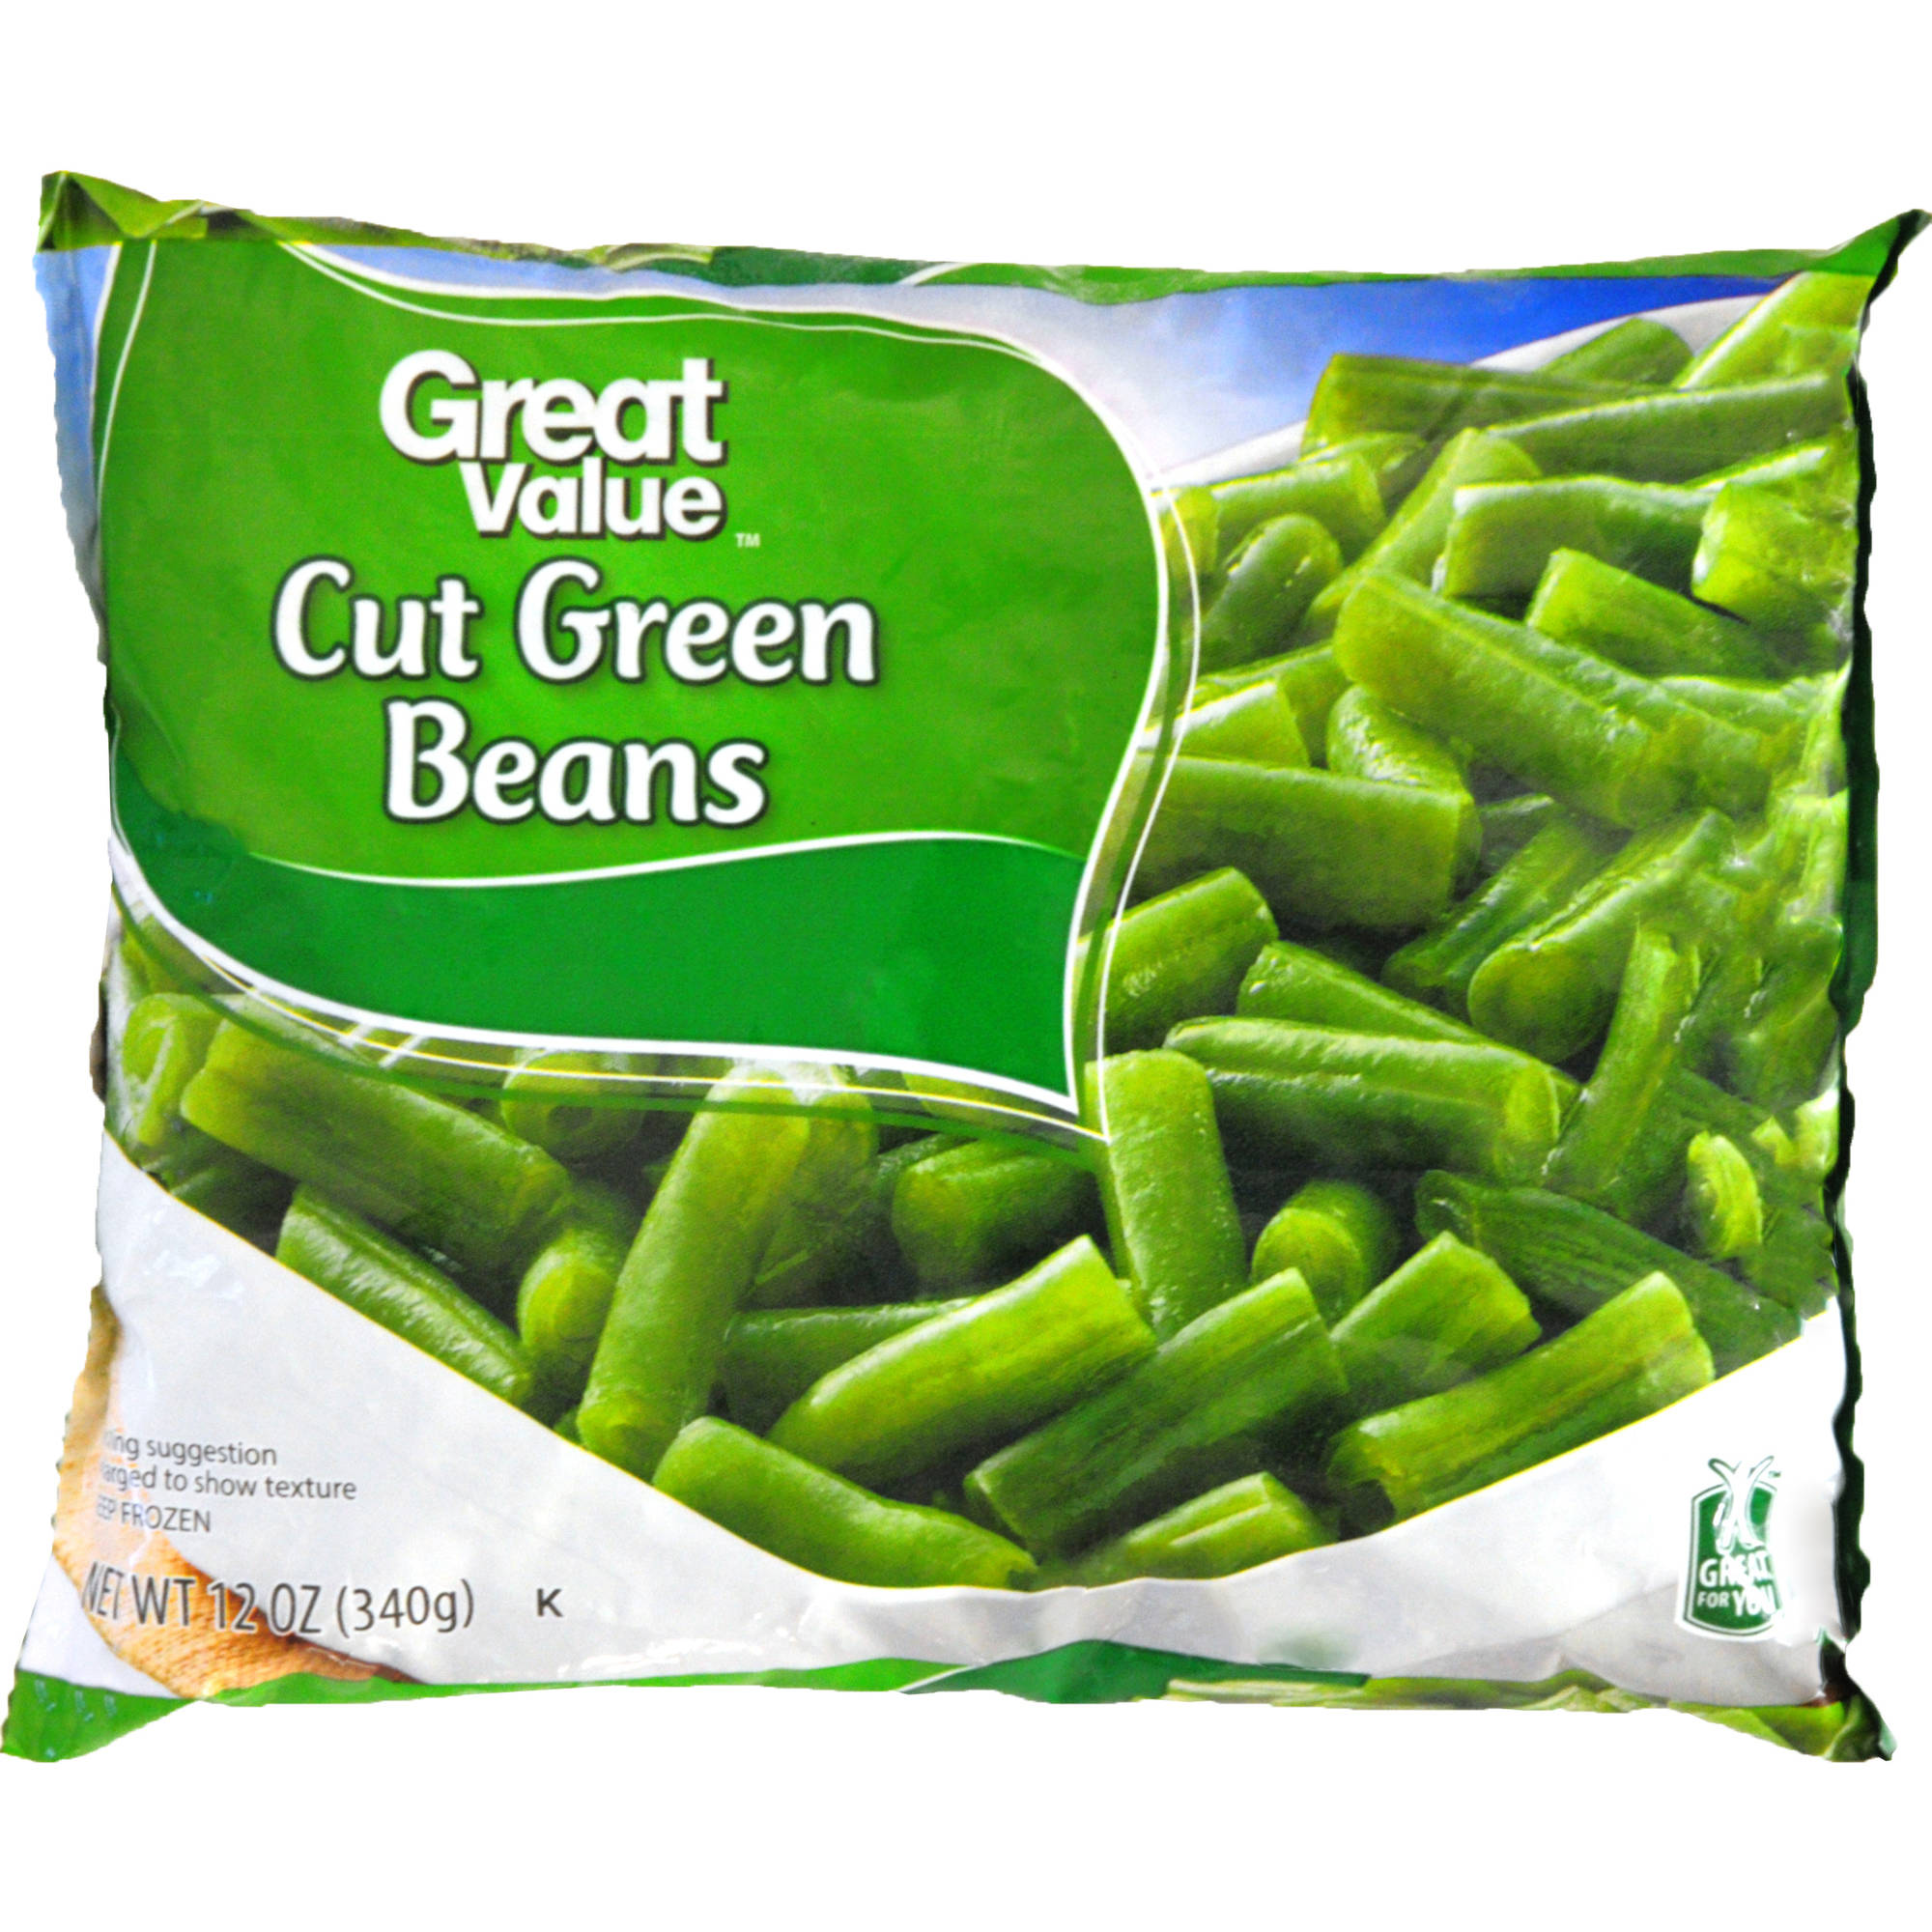 Great Value Frozen Cut Green Beans, 12 oz